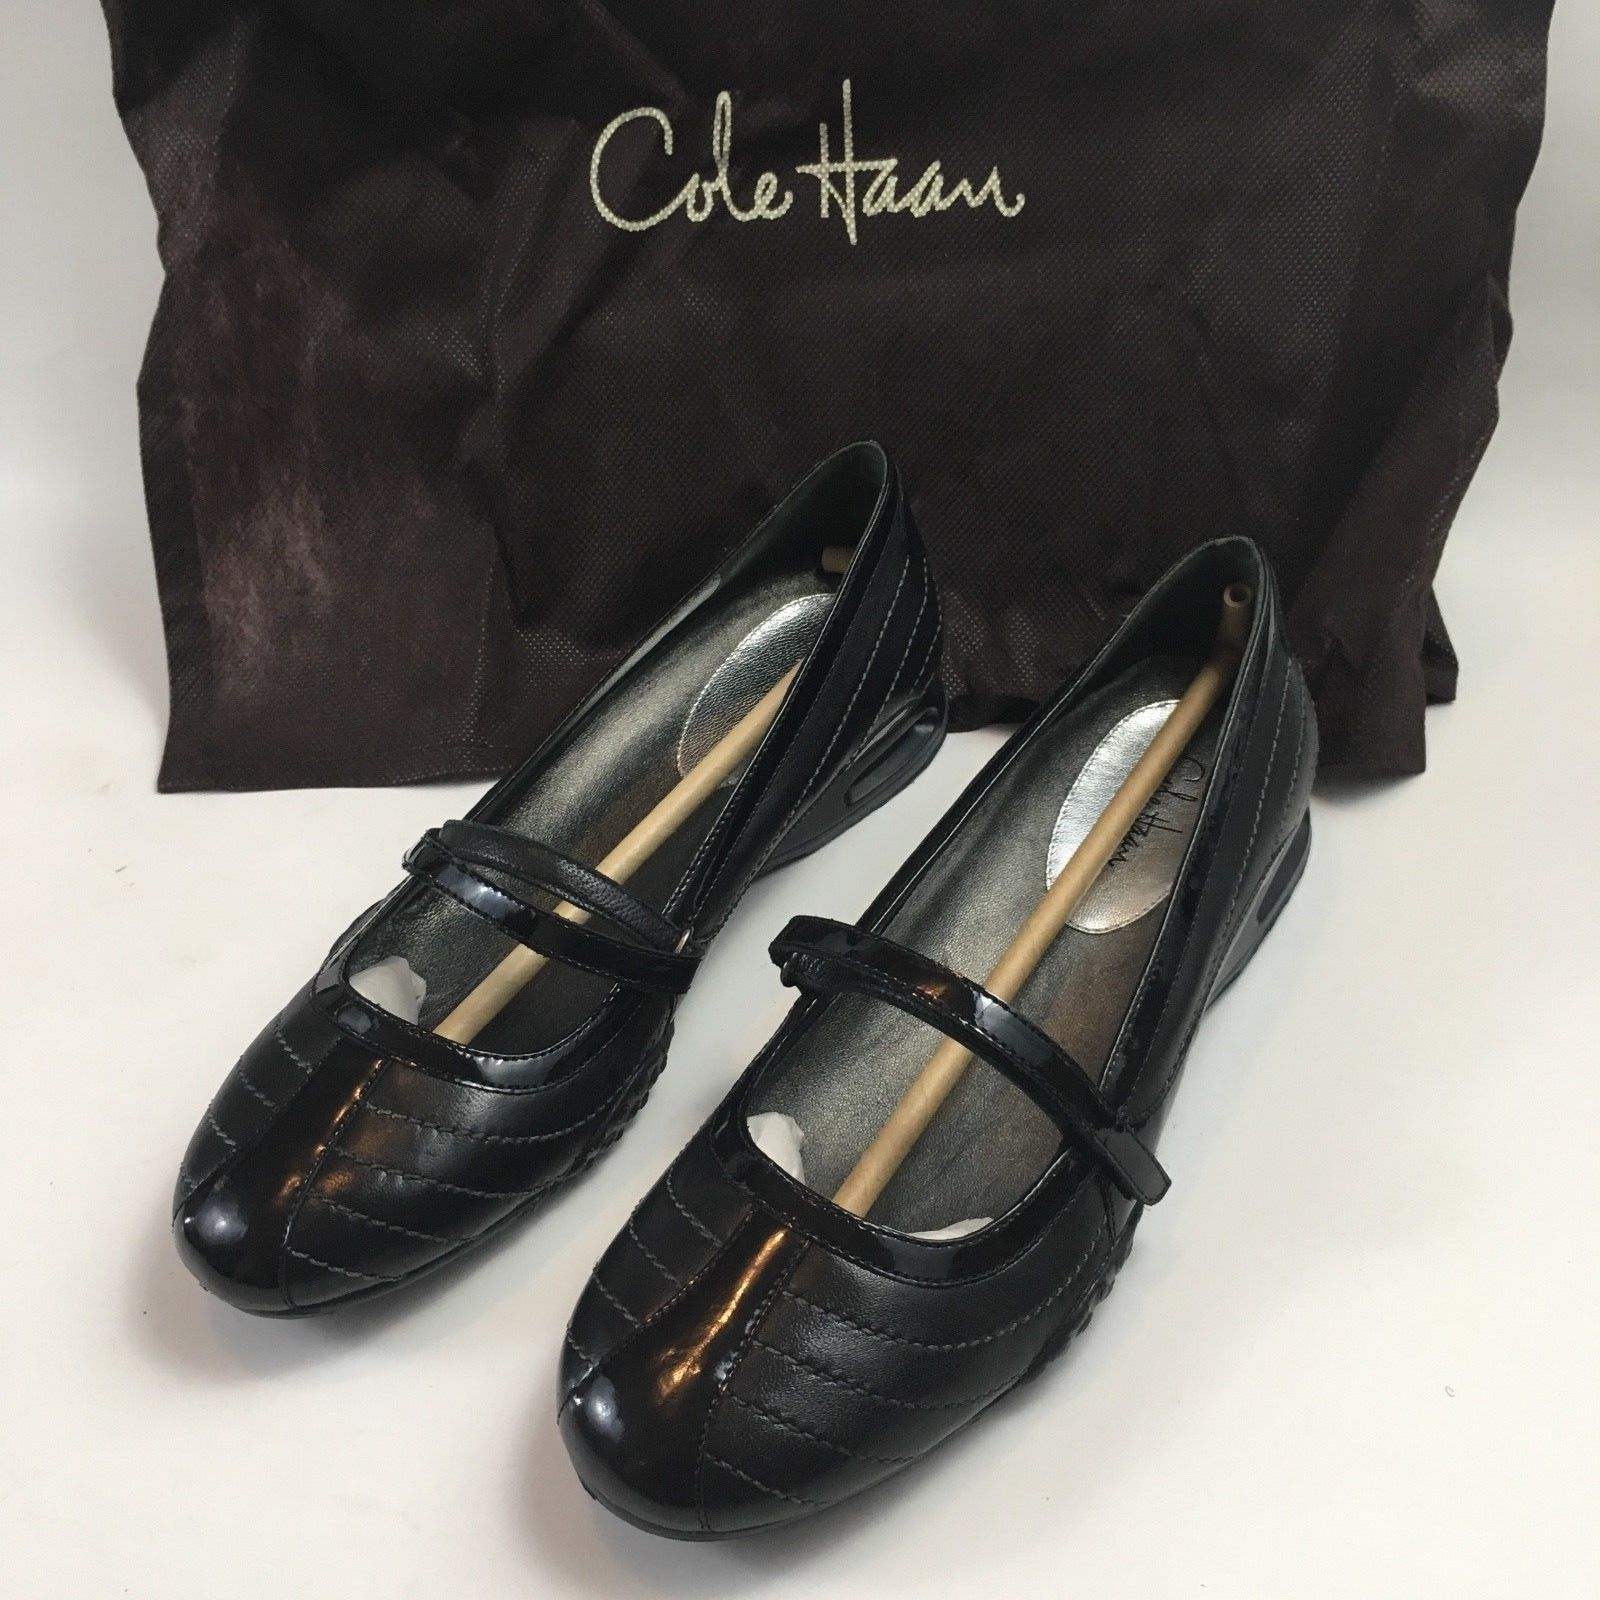 COLE HAAN Womens Sz 6.5 Air Bria Stch Black Mary Jane Ballet Flat MSRP $168